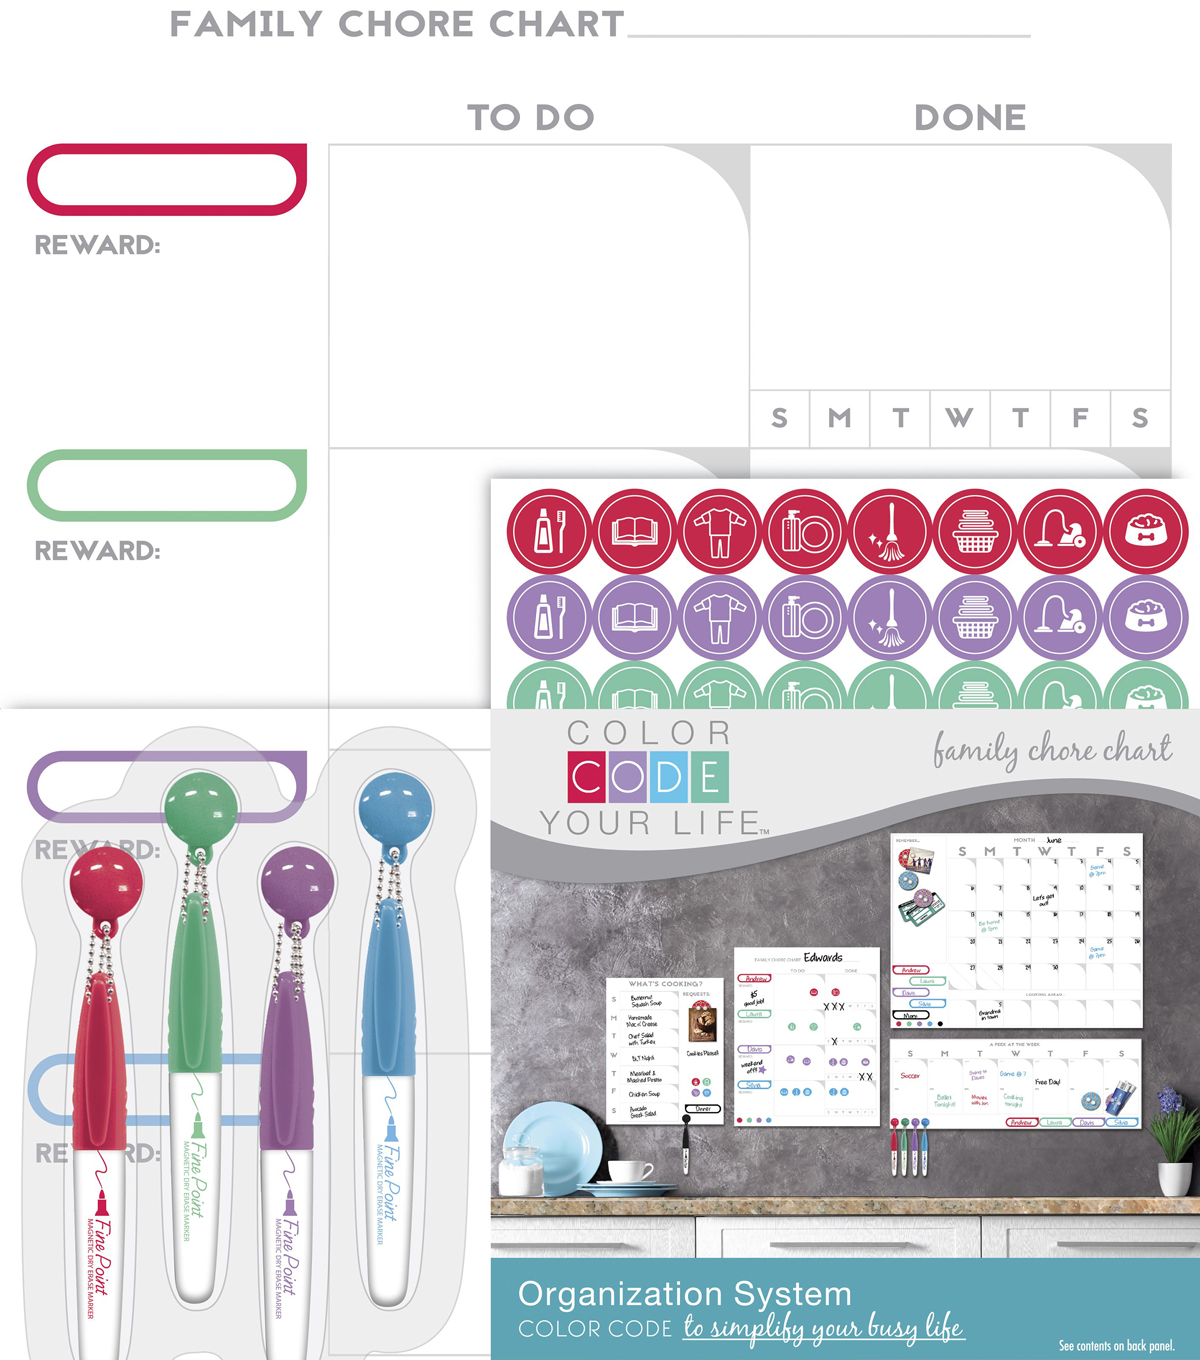 The board dudes color code your life dry erase family chore chart the board dudes color code your life dry erase family chore chart nvjuhfo Choice Image